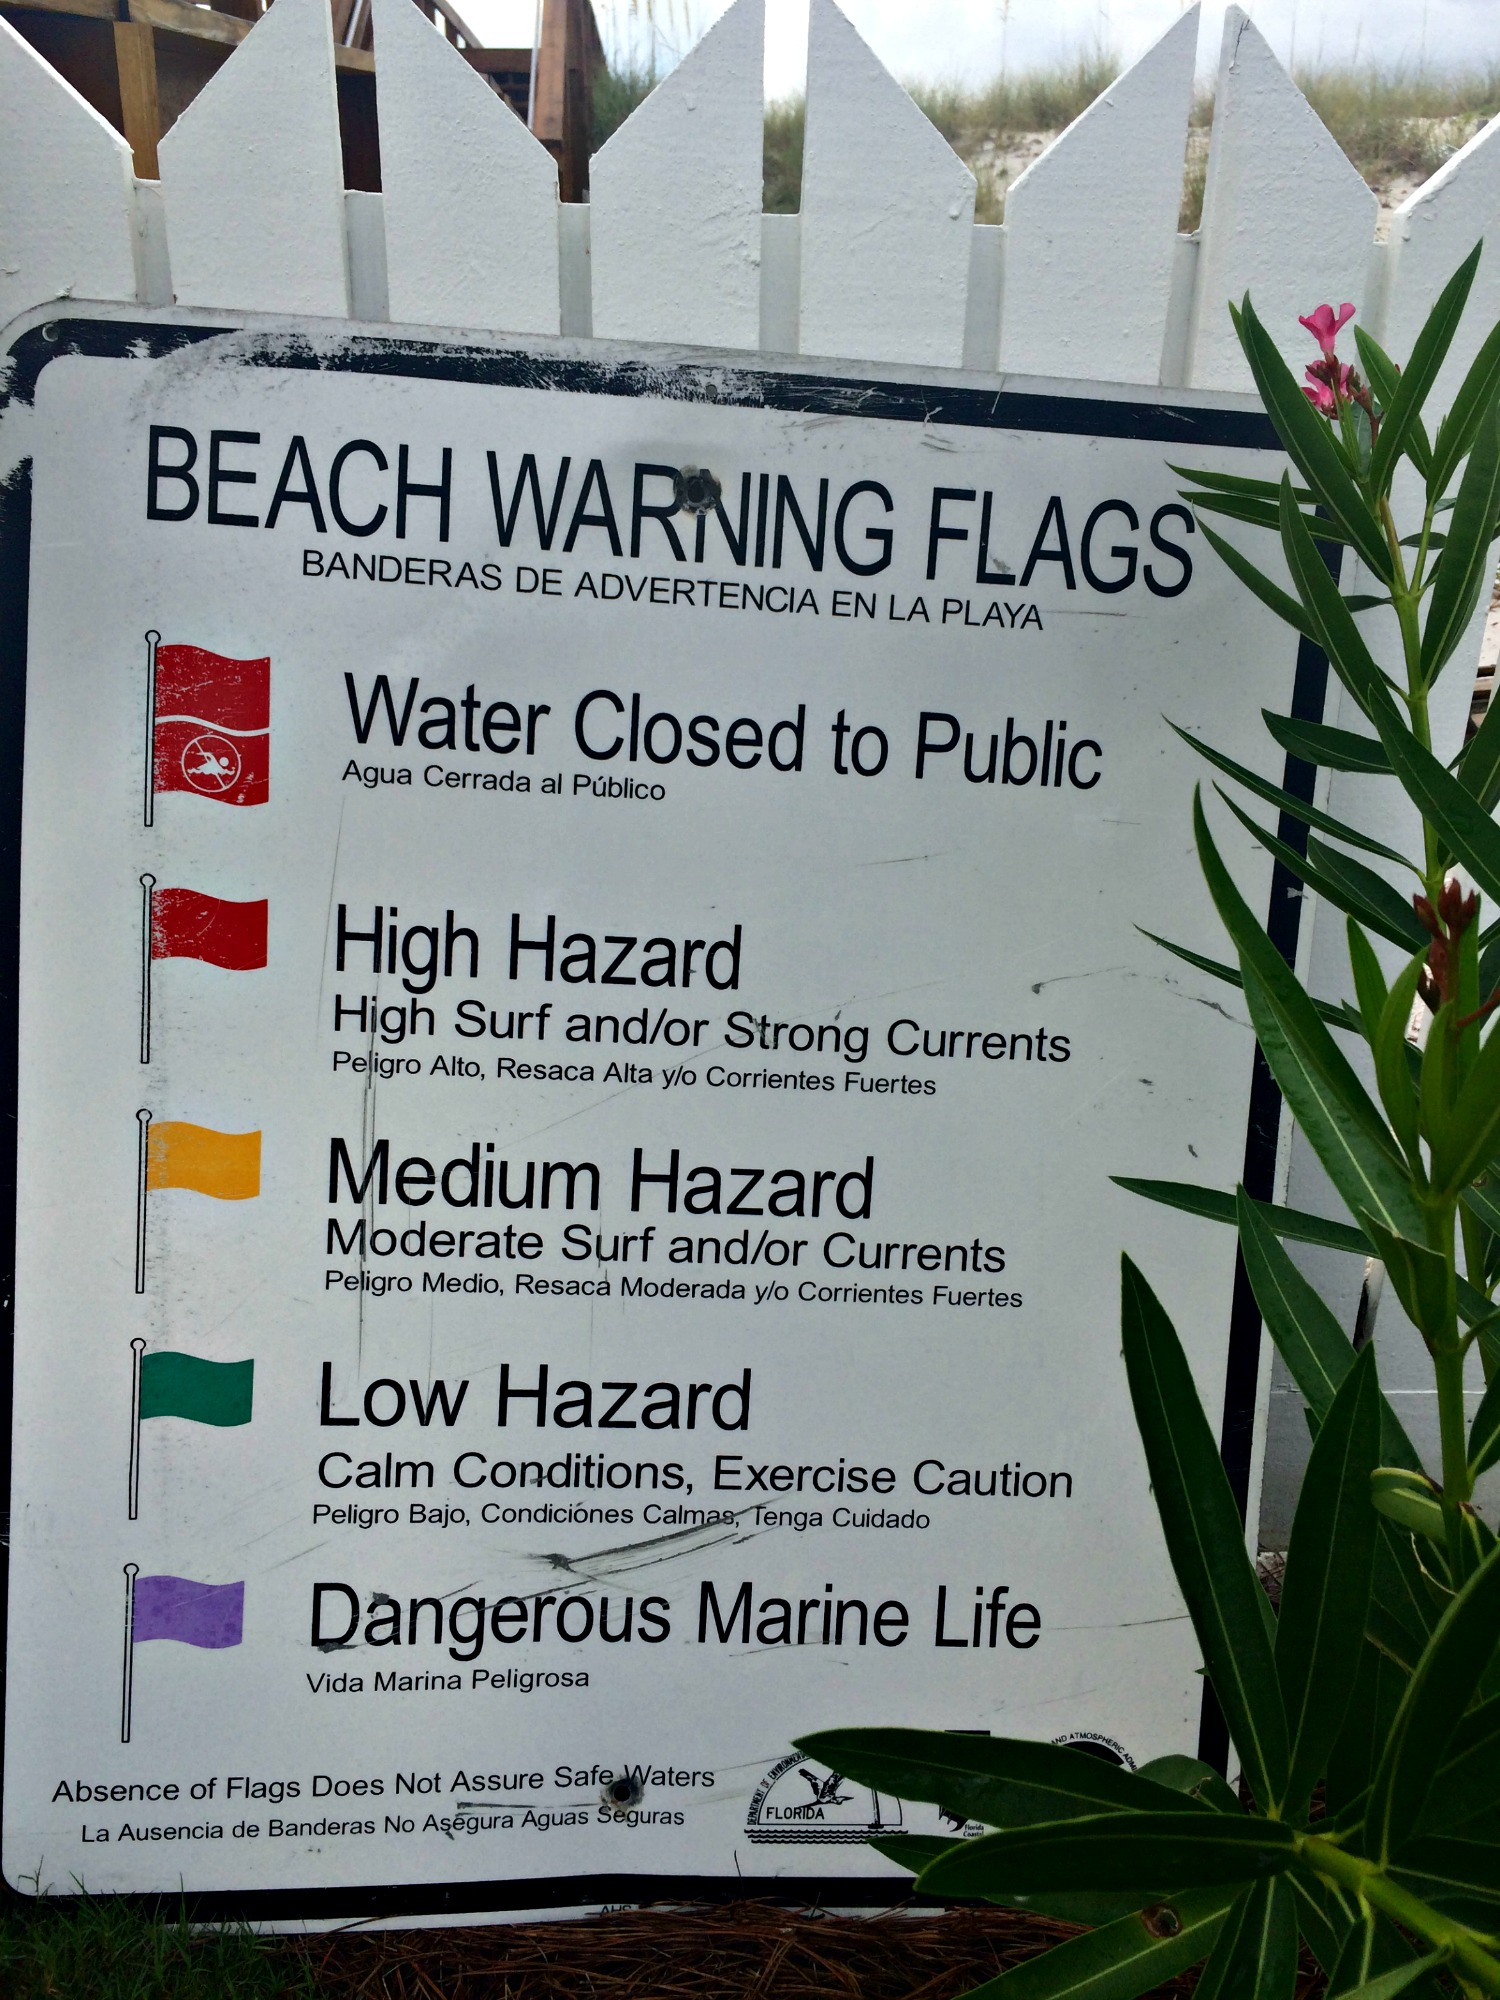 Sign showing meanings of the beach warning flags